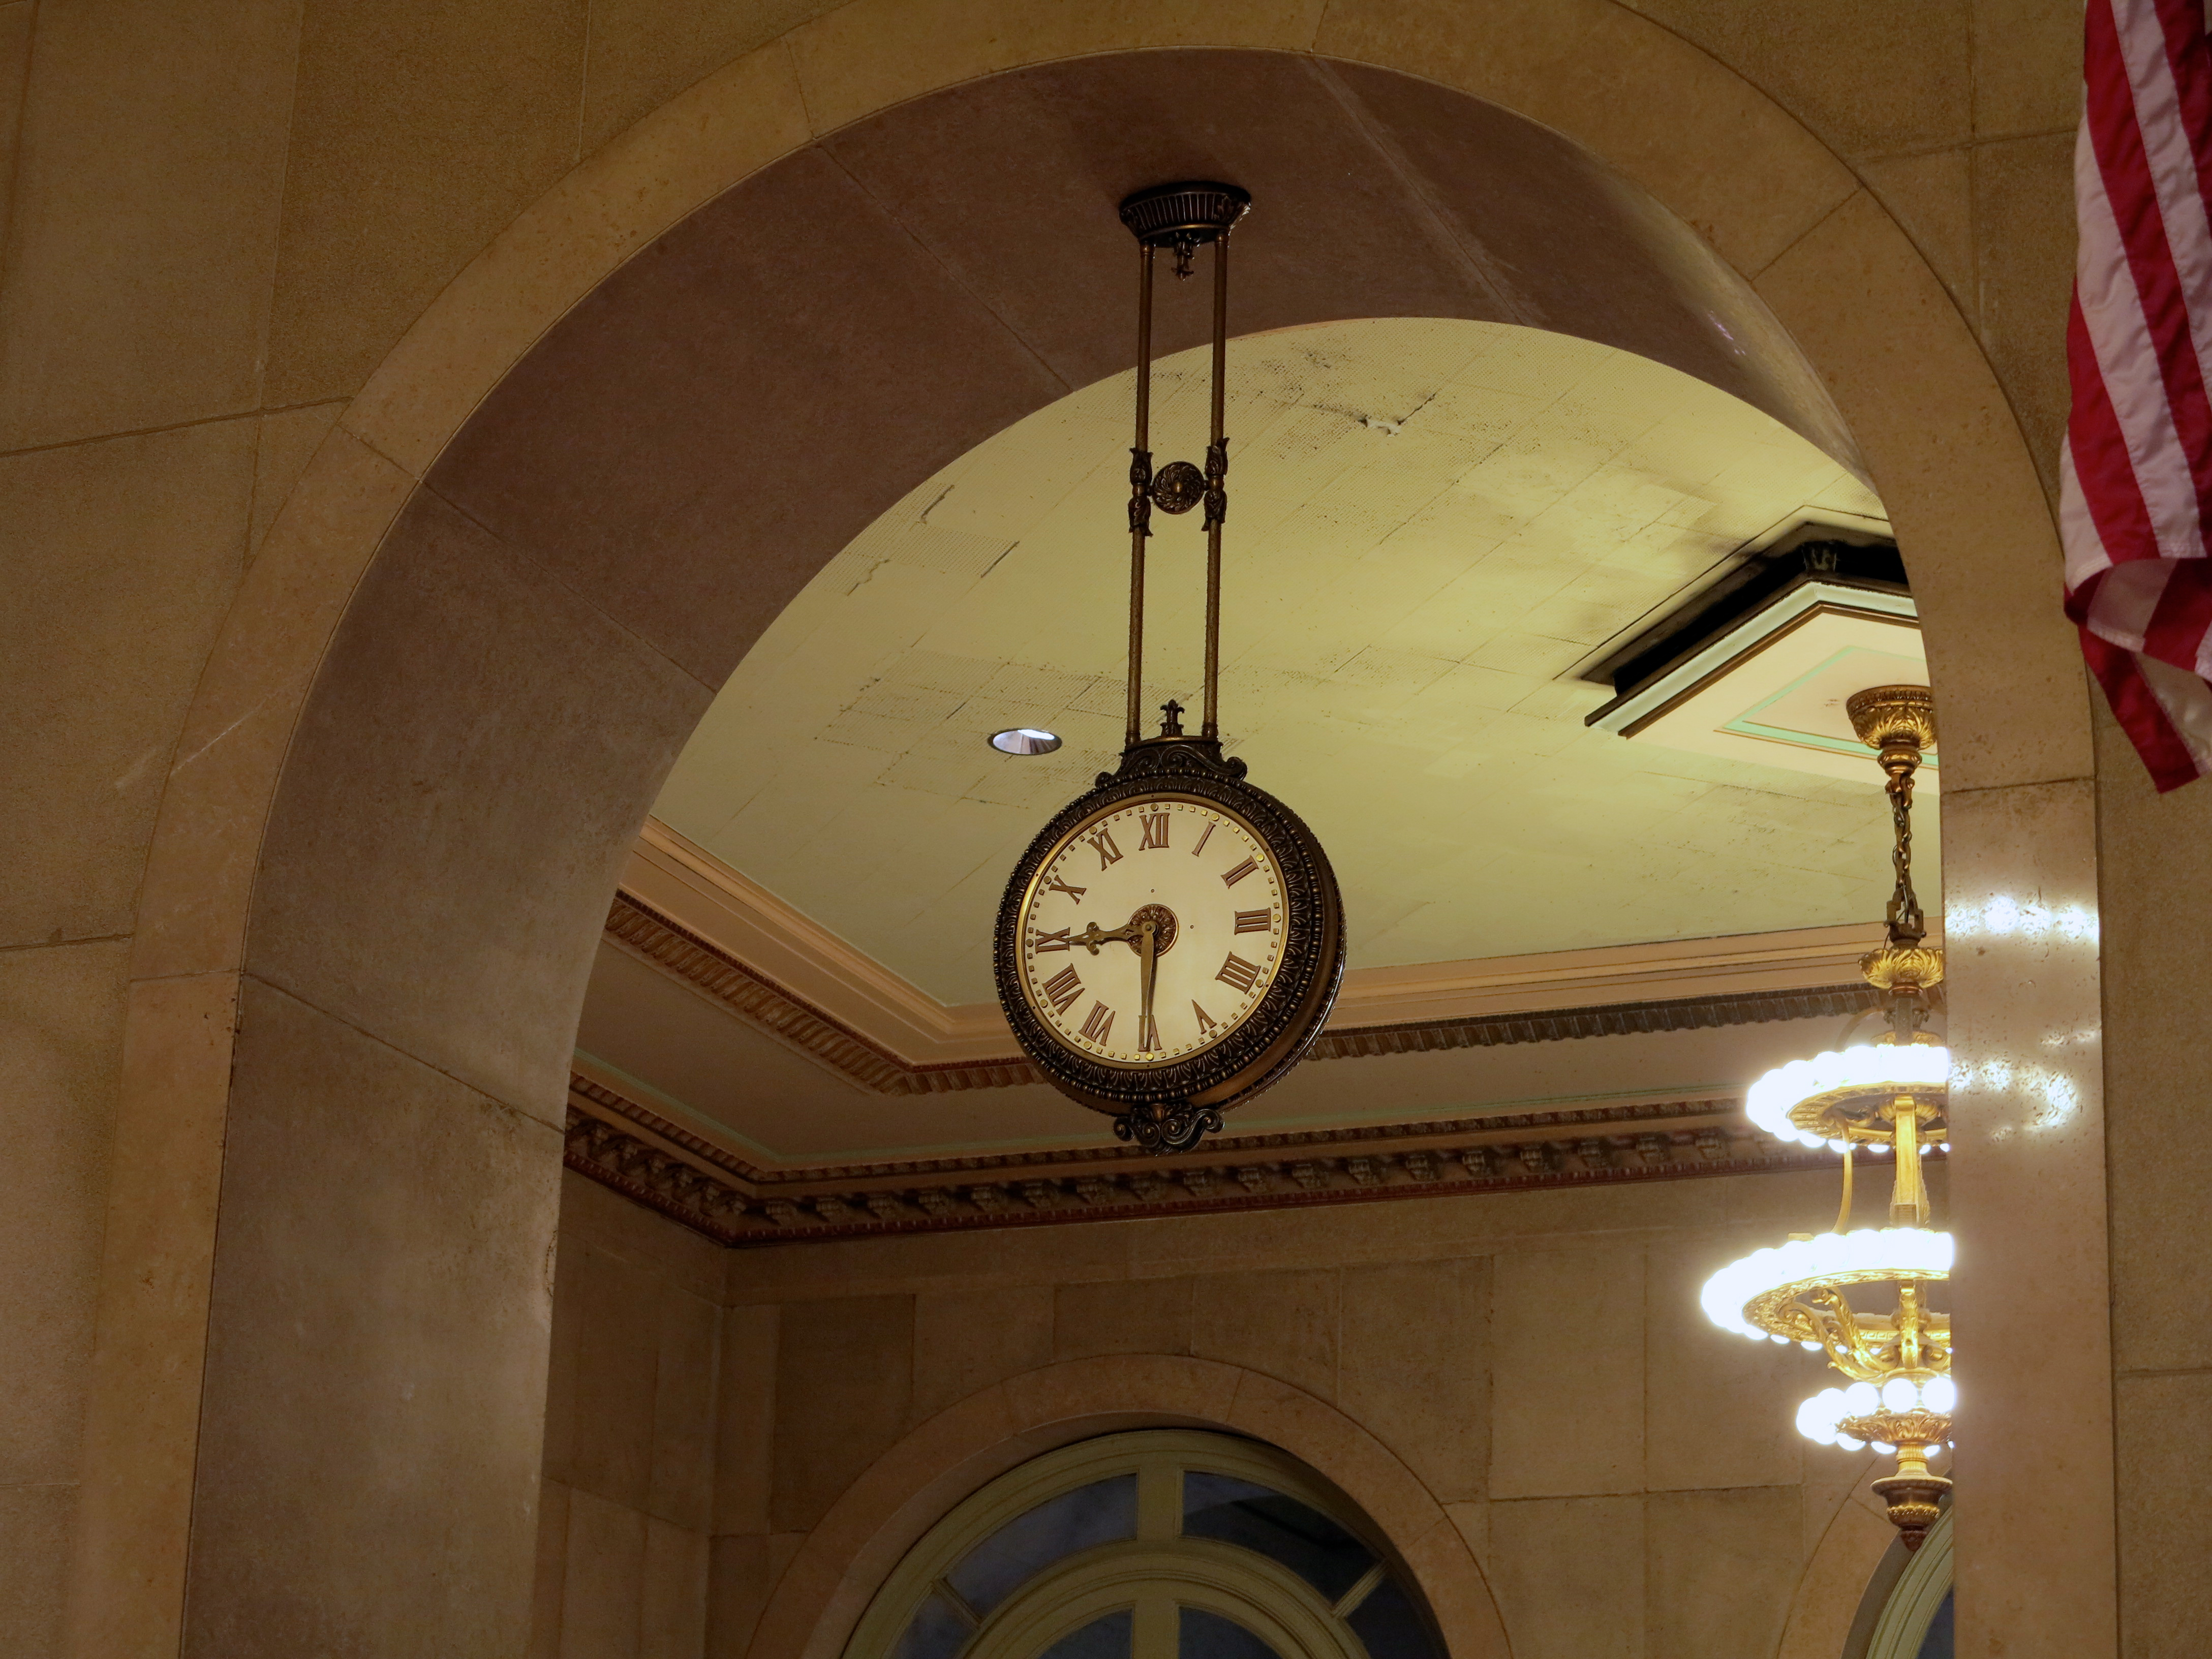 Reception Hall clock, Family Court